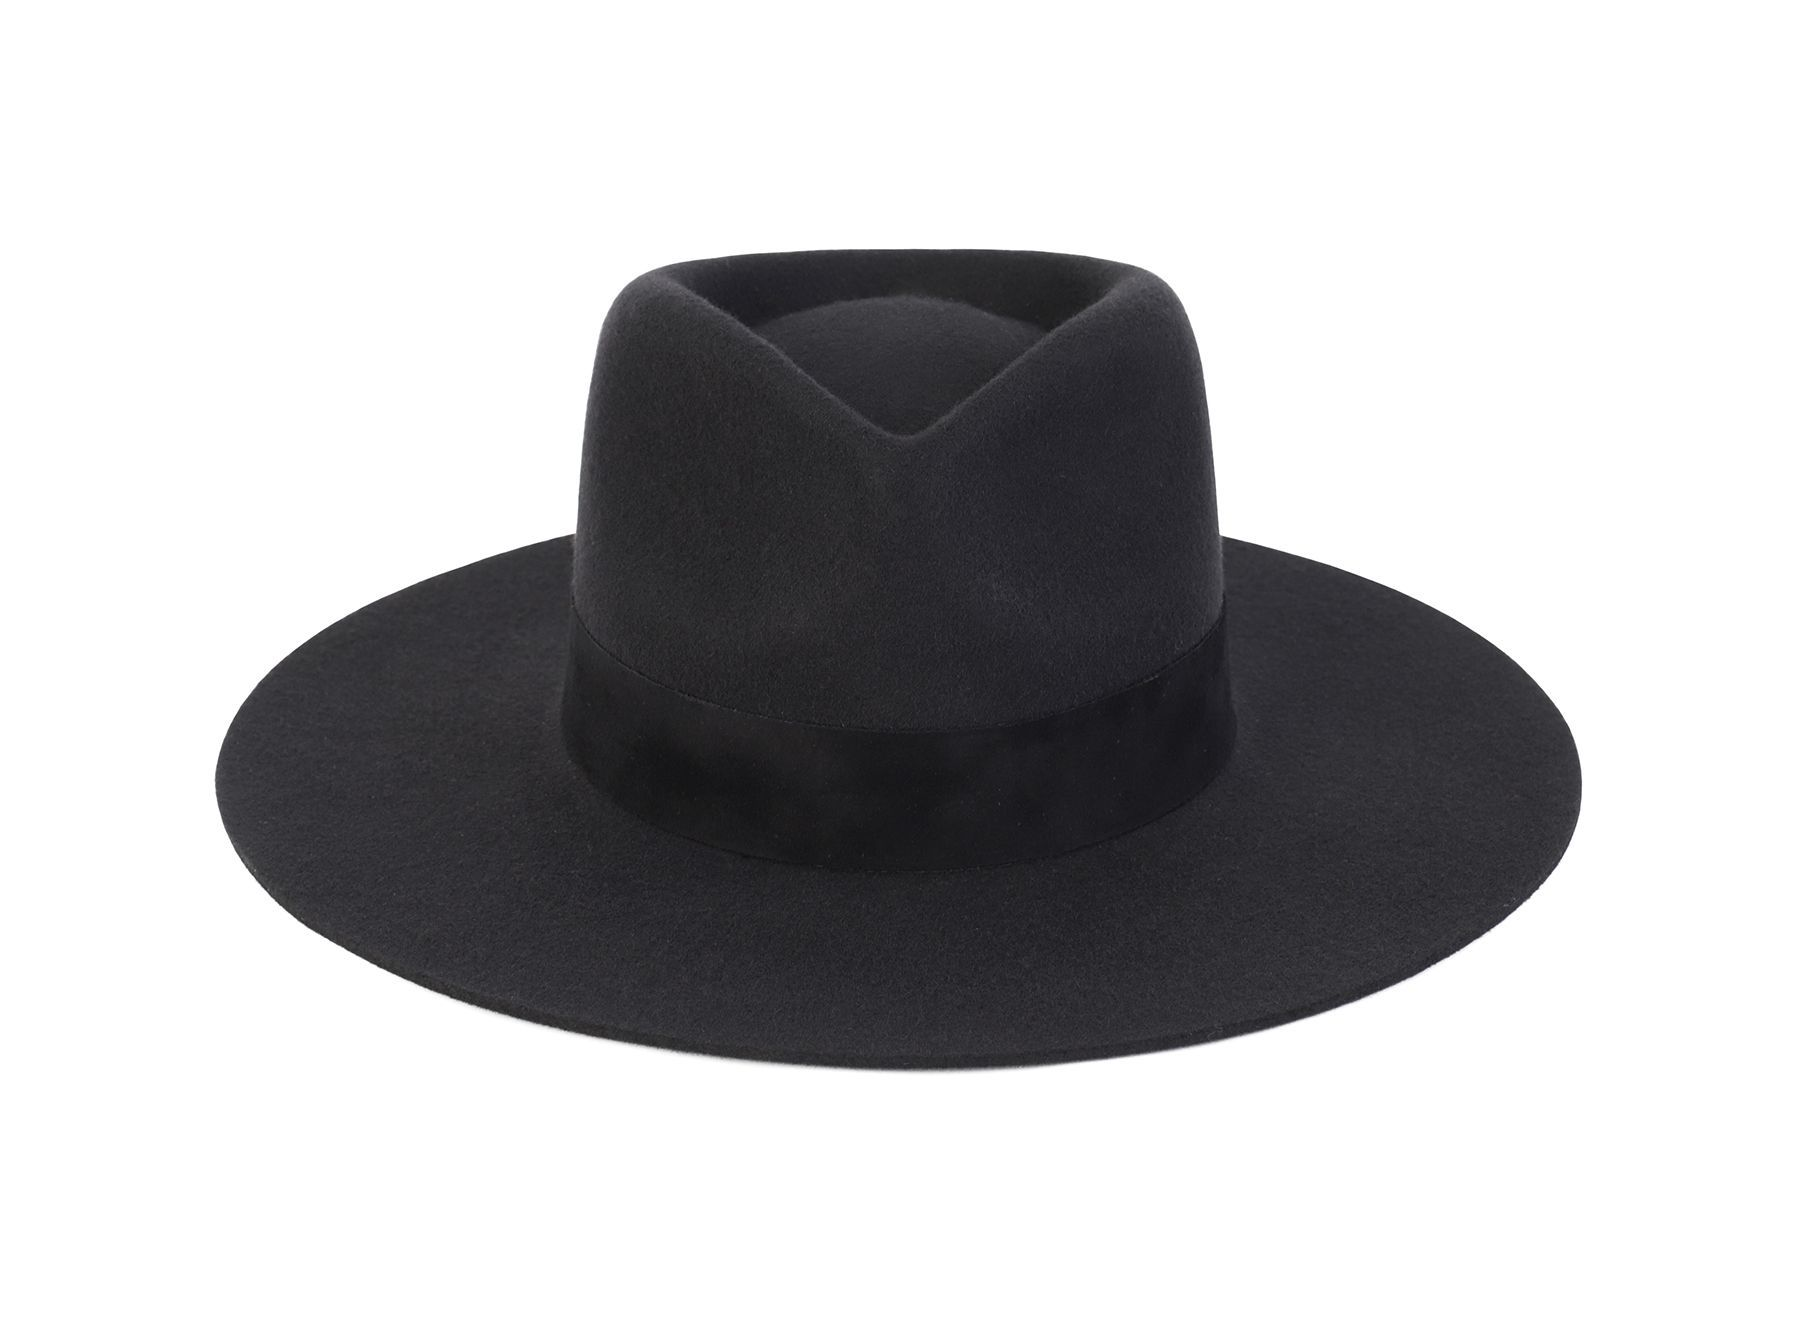 Load image into Gallery viewer, The Mirage - Black | Lack of Color - Women's Hats & Accessories